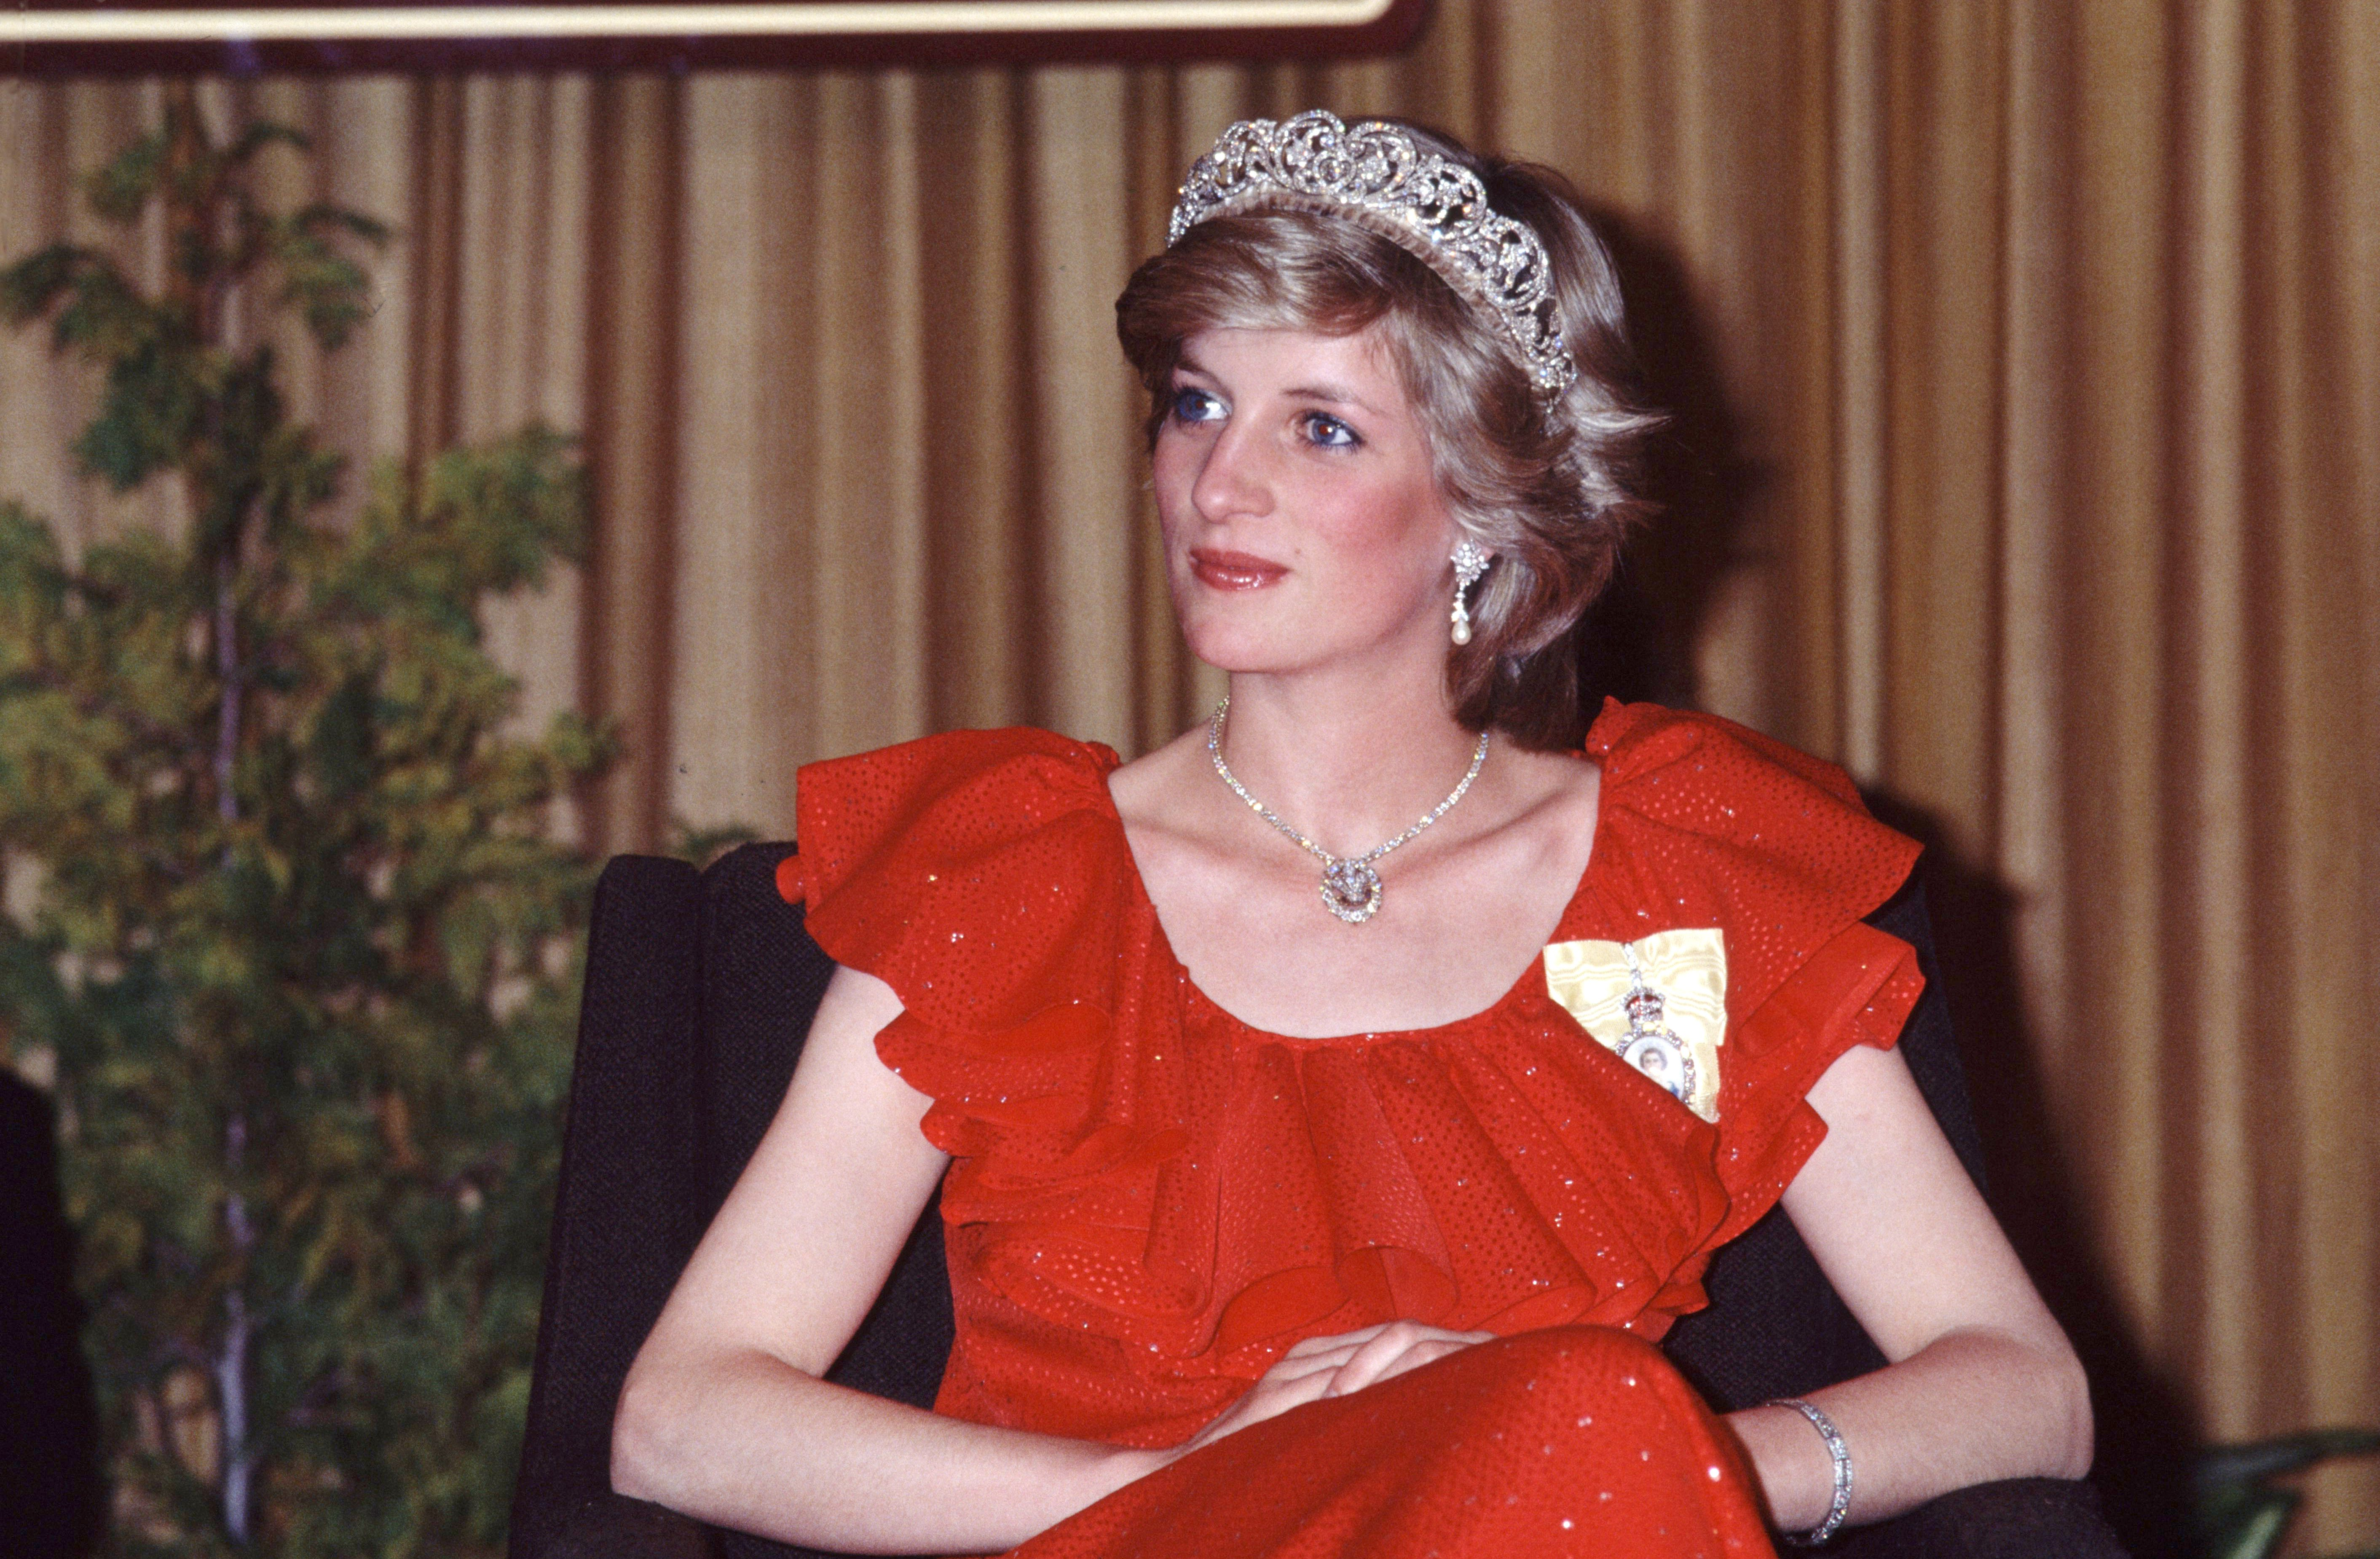 dde9a5d7ef9866 Princess Diana Fashion Tips You Can Steal | Reader's Digest